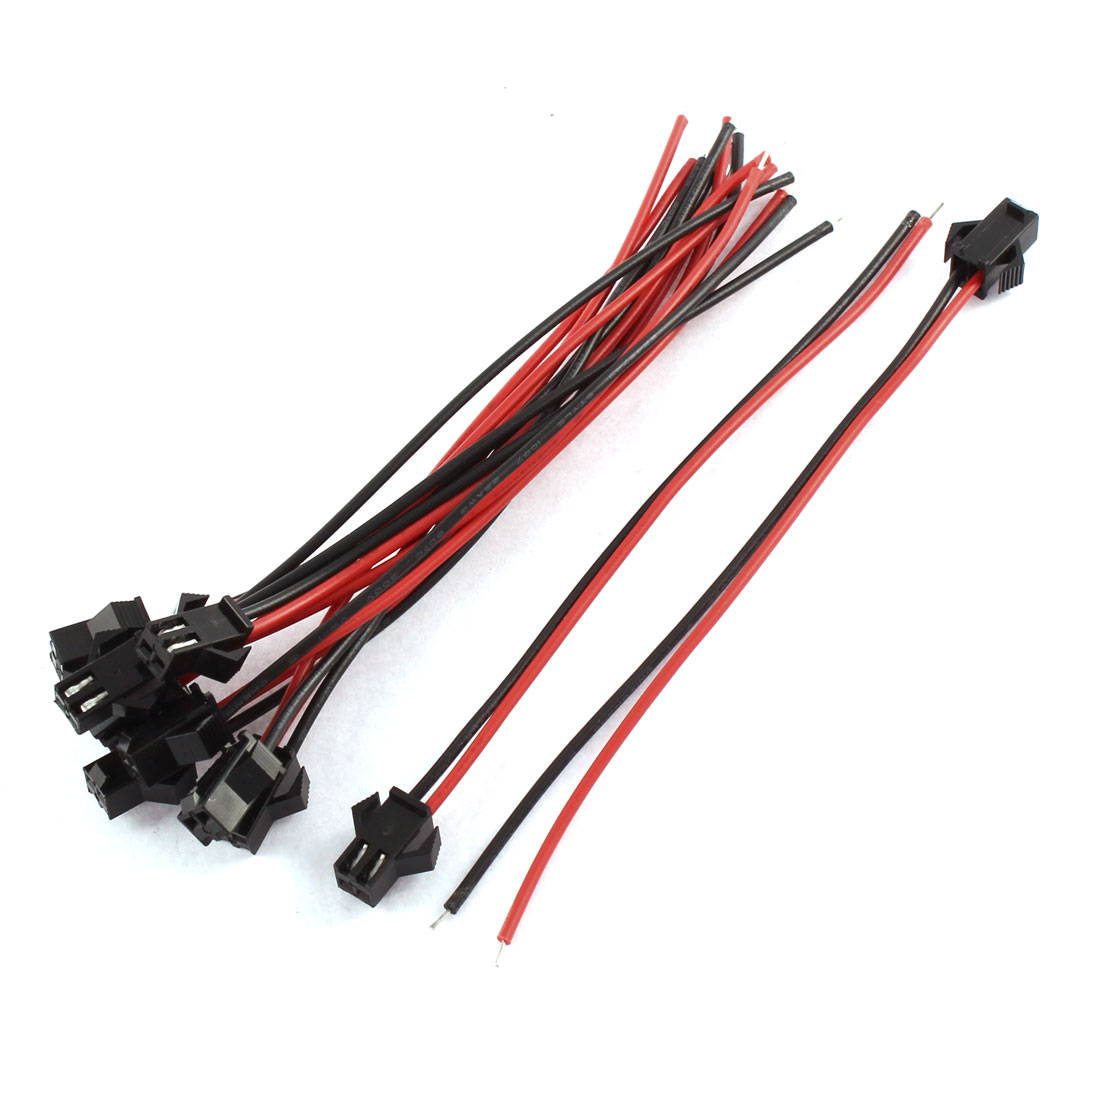 10Pcs 2P Male JST-SM Connector Cable for Programmable LED Strings